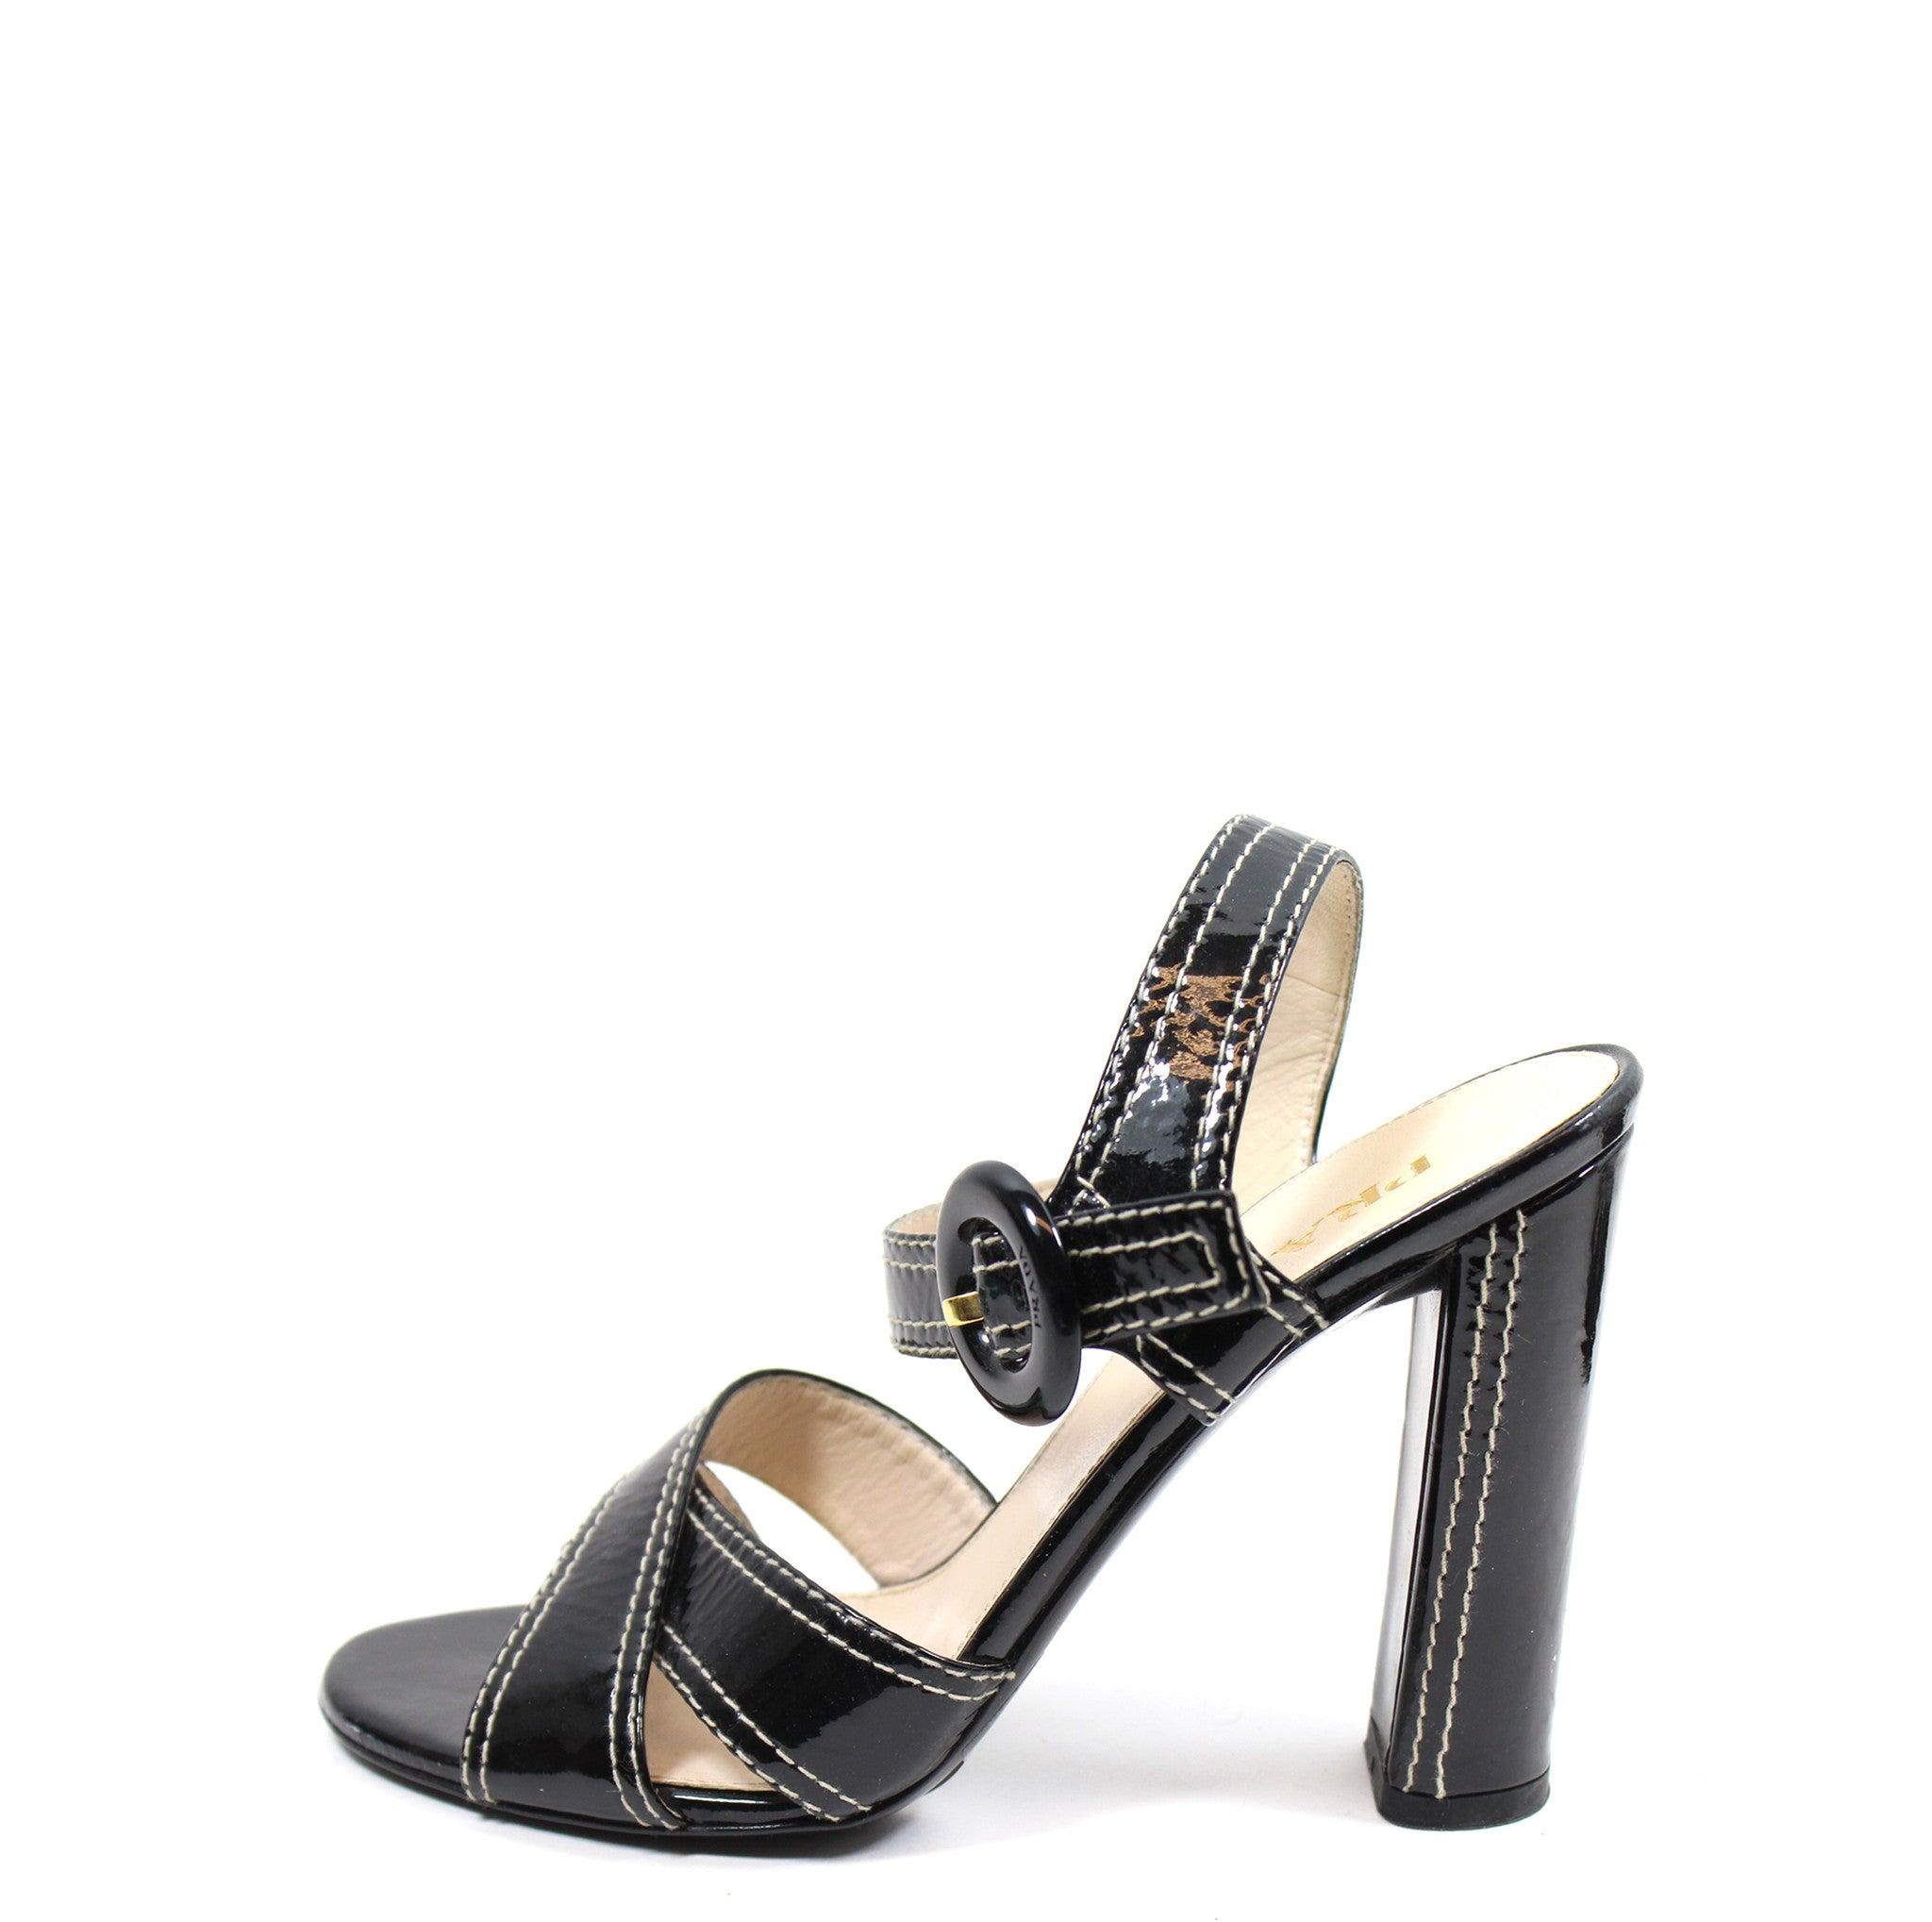 Prada Patent Leather Open Toe Sandals w/ Contrast Top Stitch (Size 37)